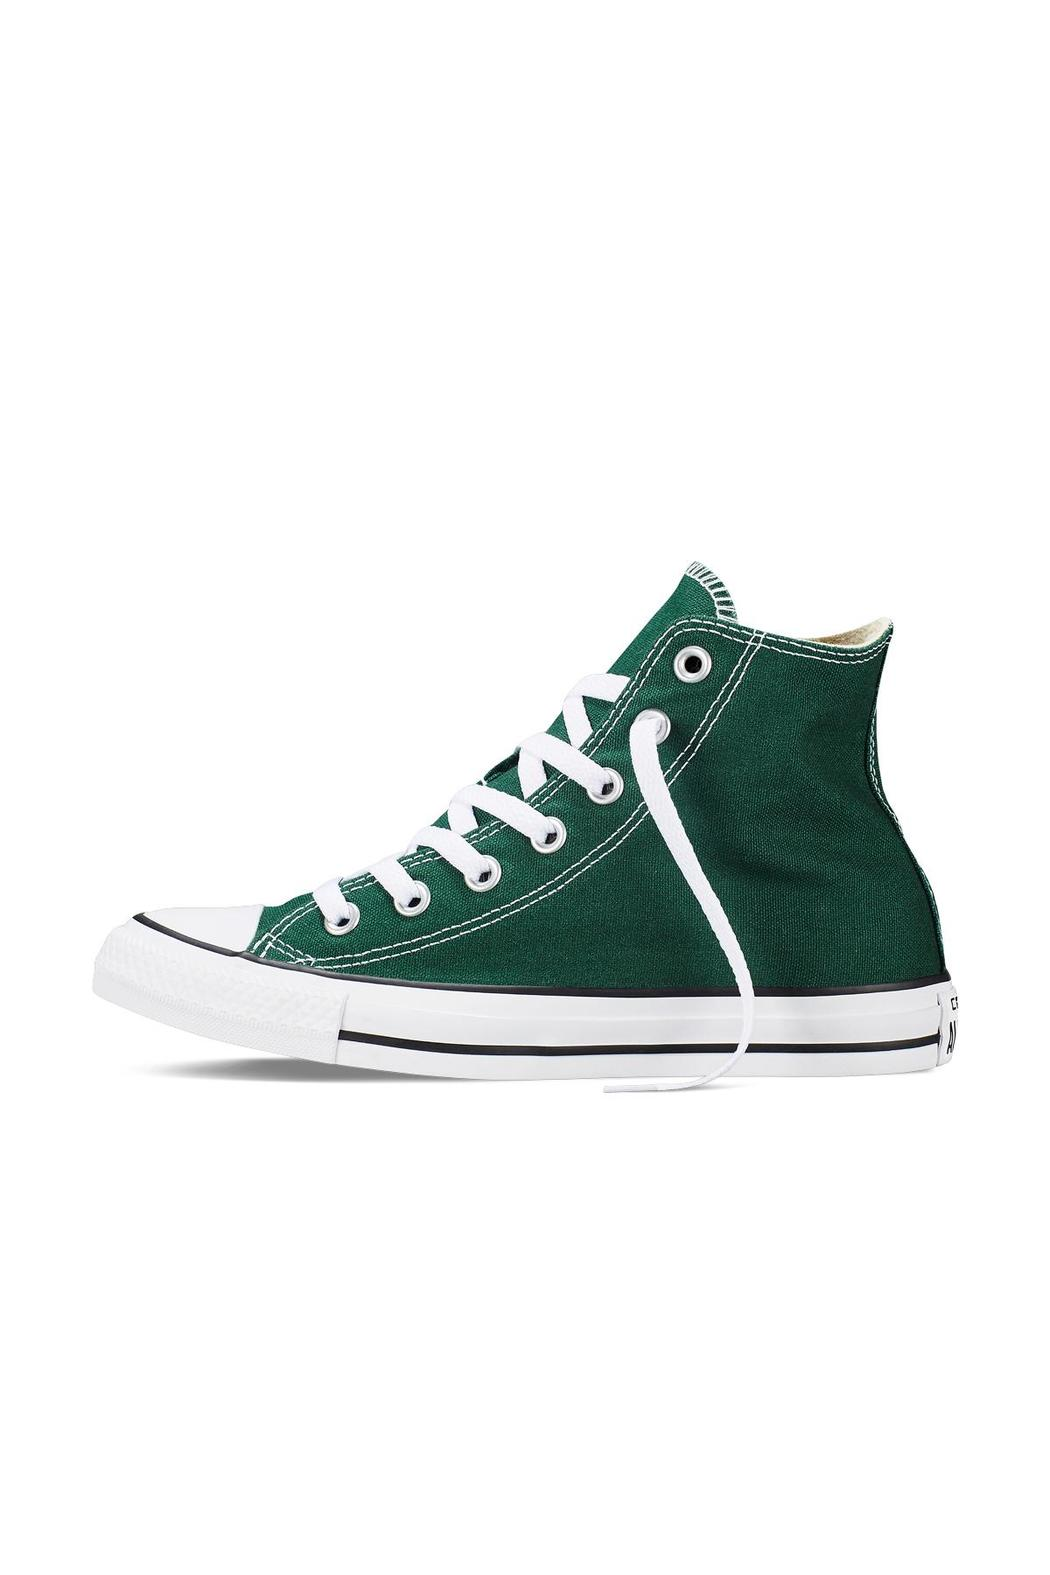 Converse Gloom Green High-Tops from